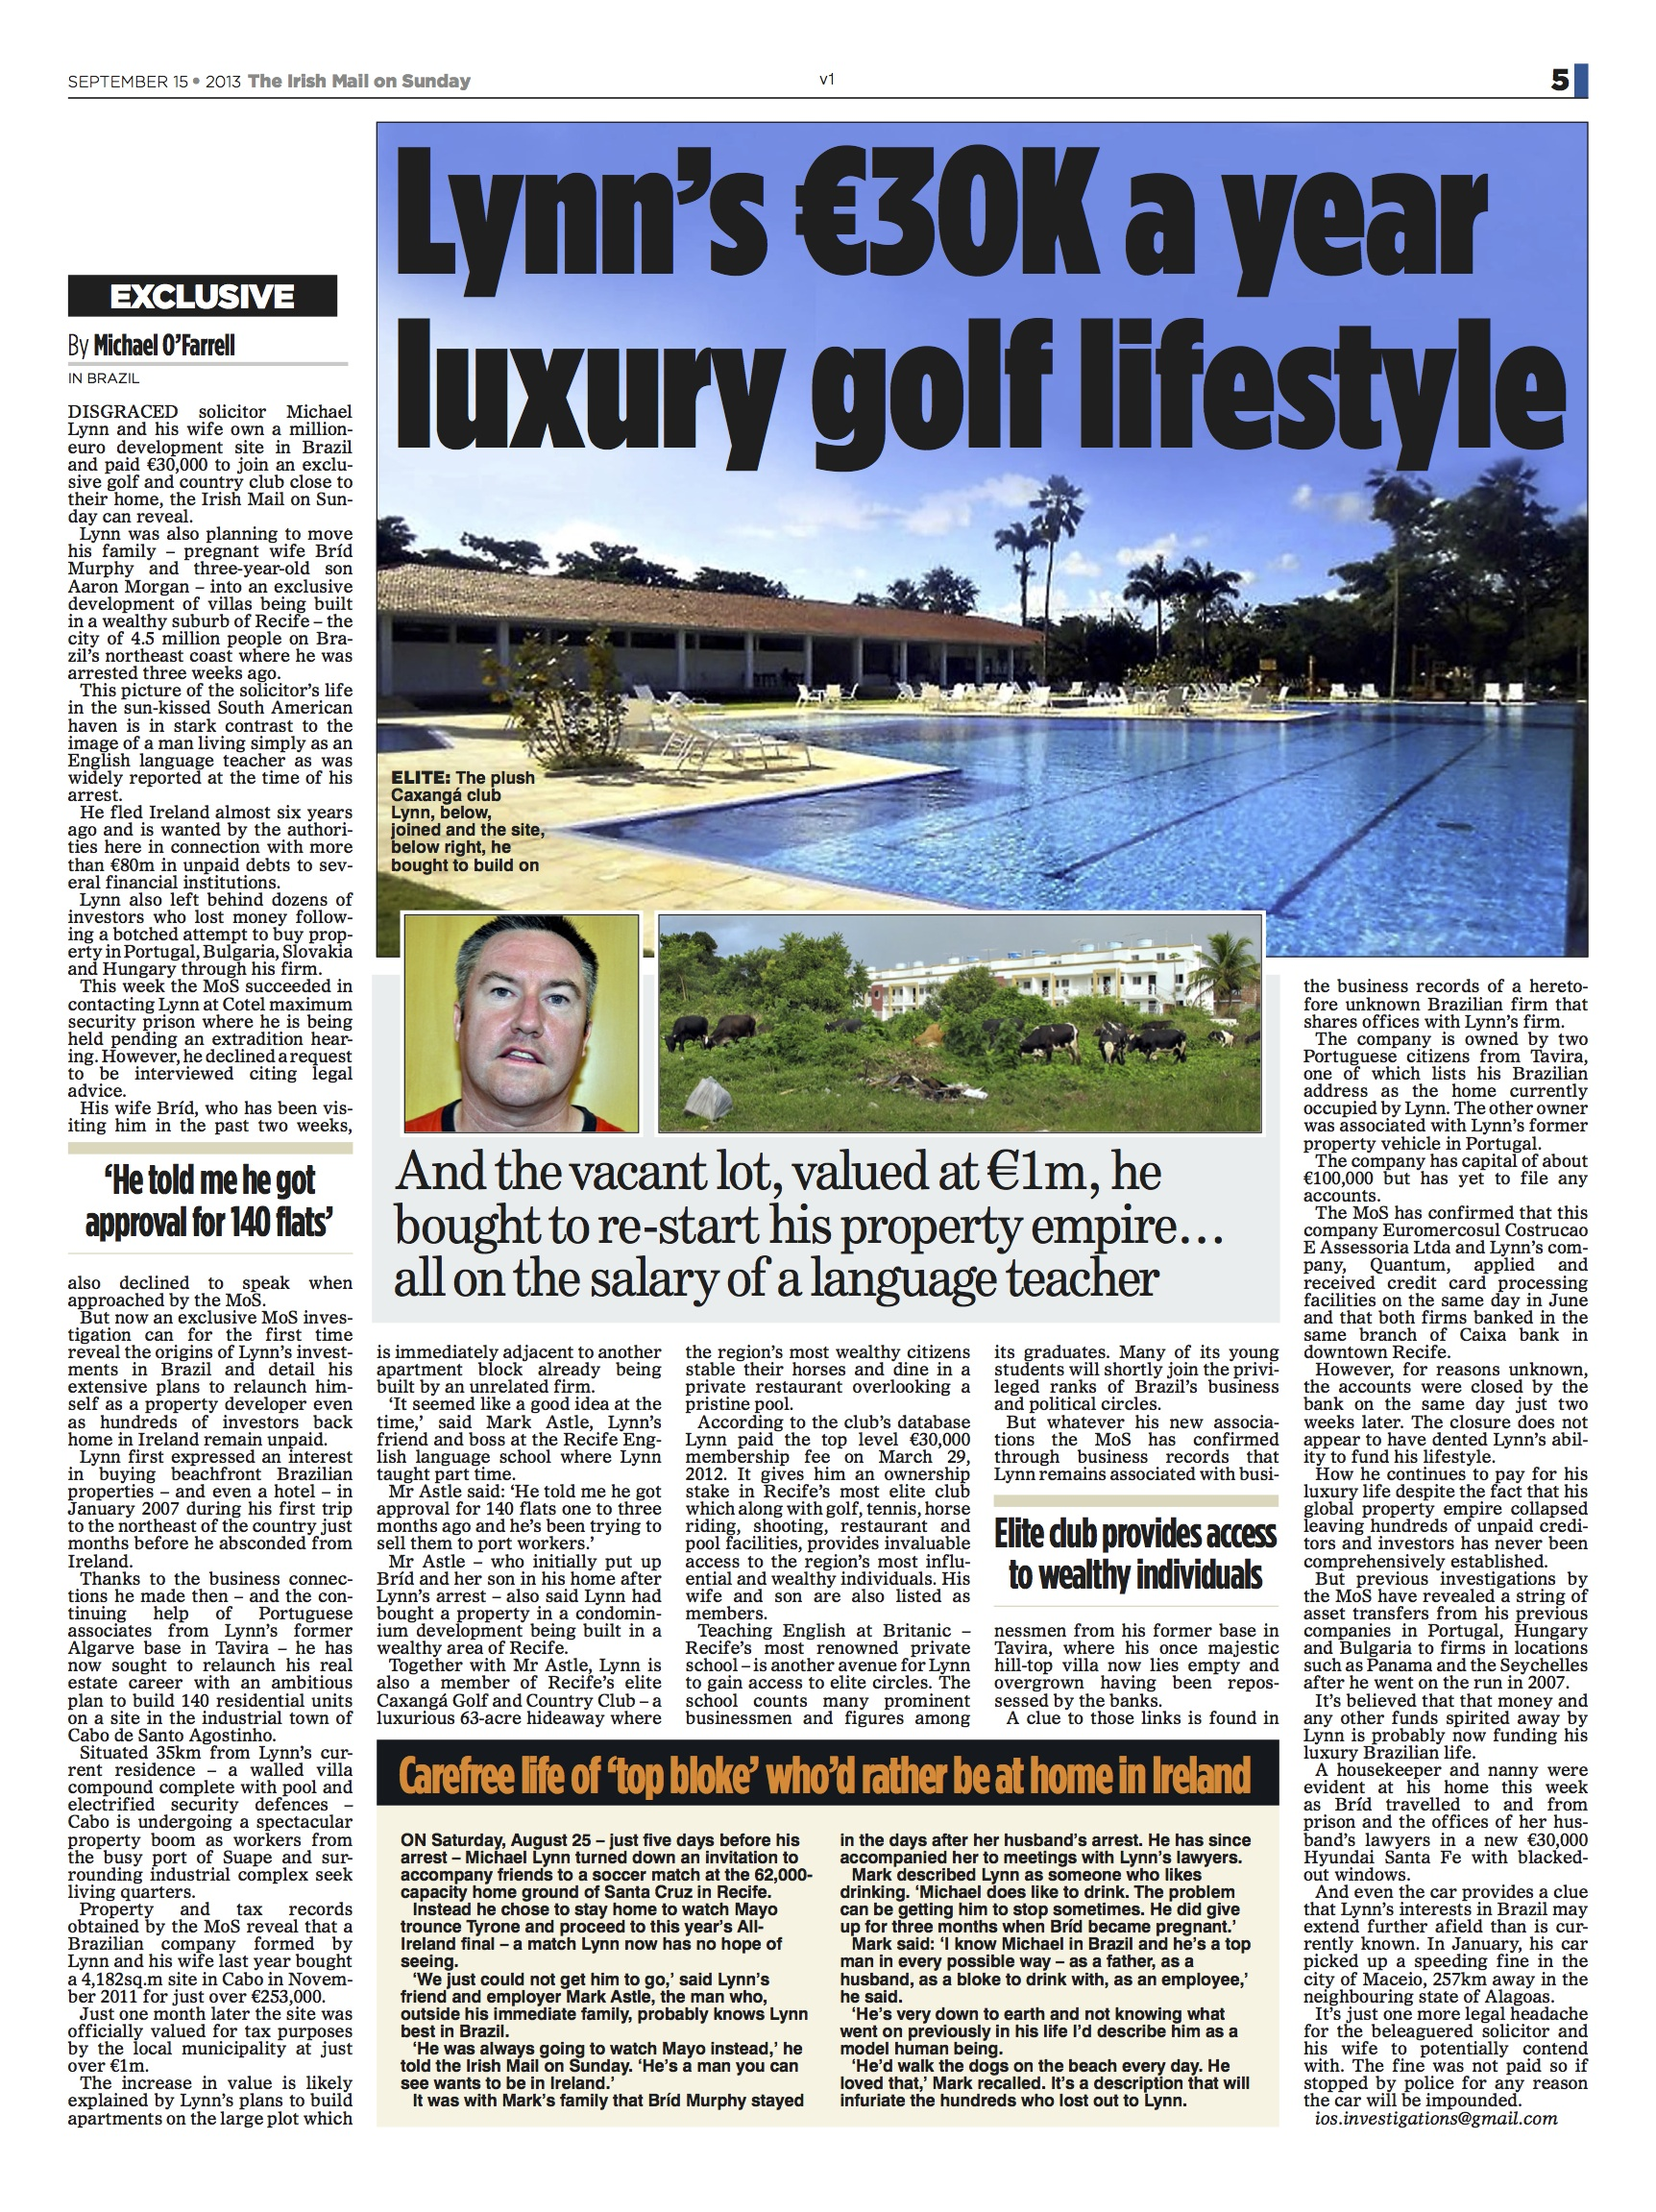 Lynn's €30K a year luxury golf lifestyle – NewsScoops Org